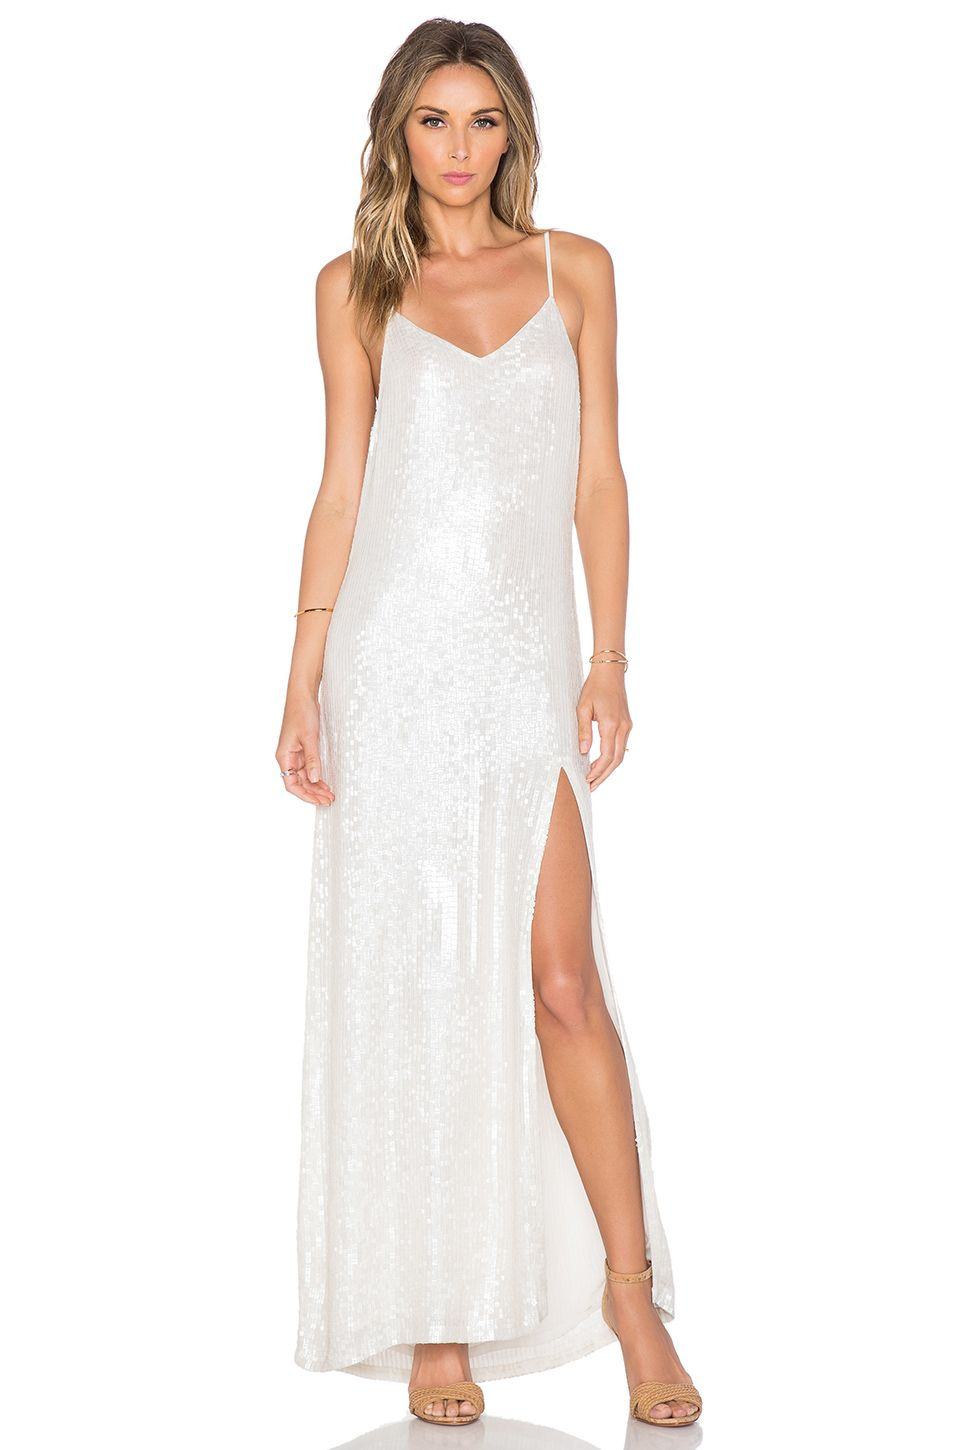 MLV London Sequin Maxi Dress in White | REVOLVE | ✒éclat | Pinterest